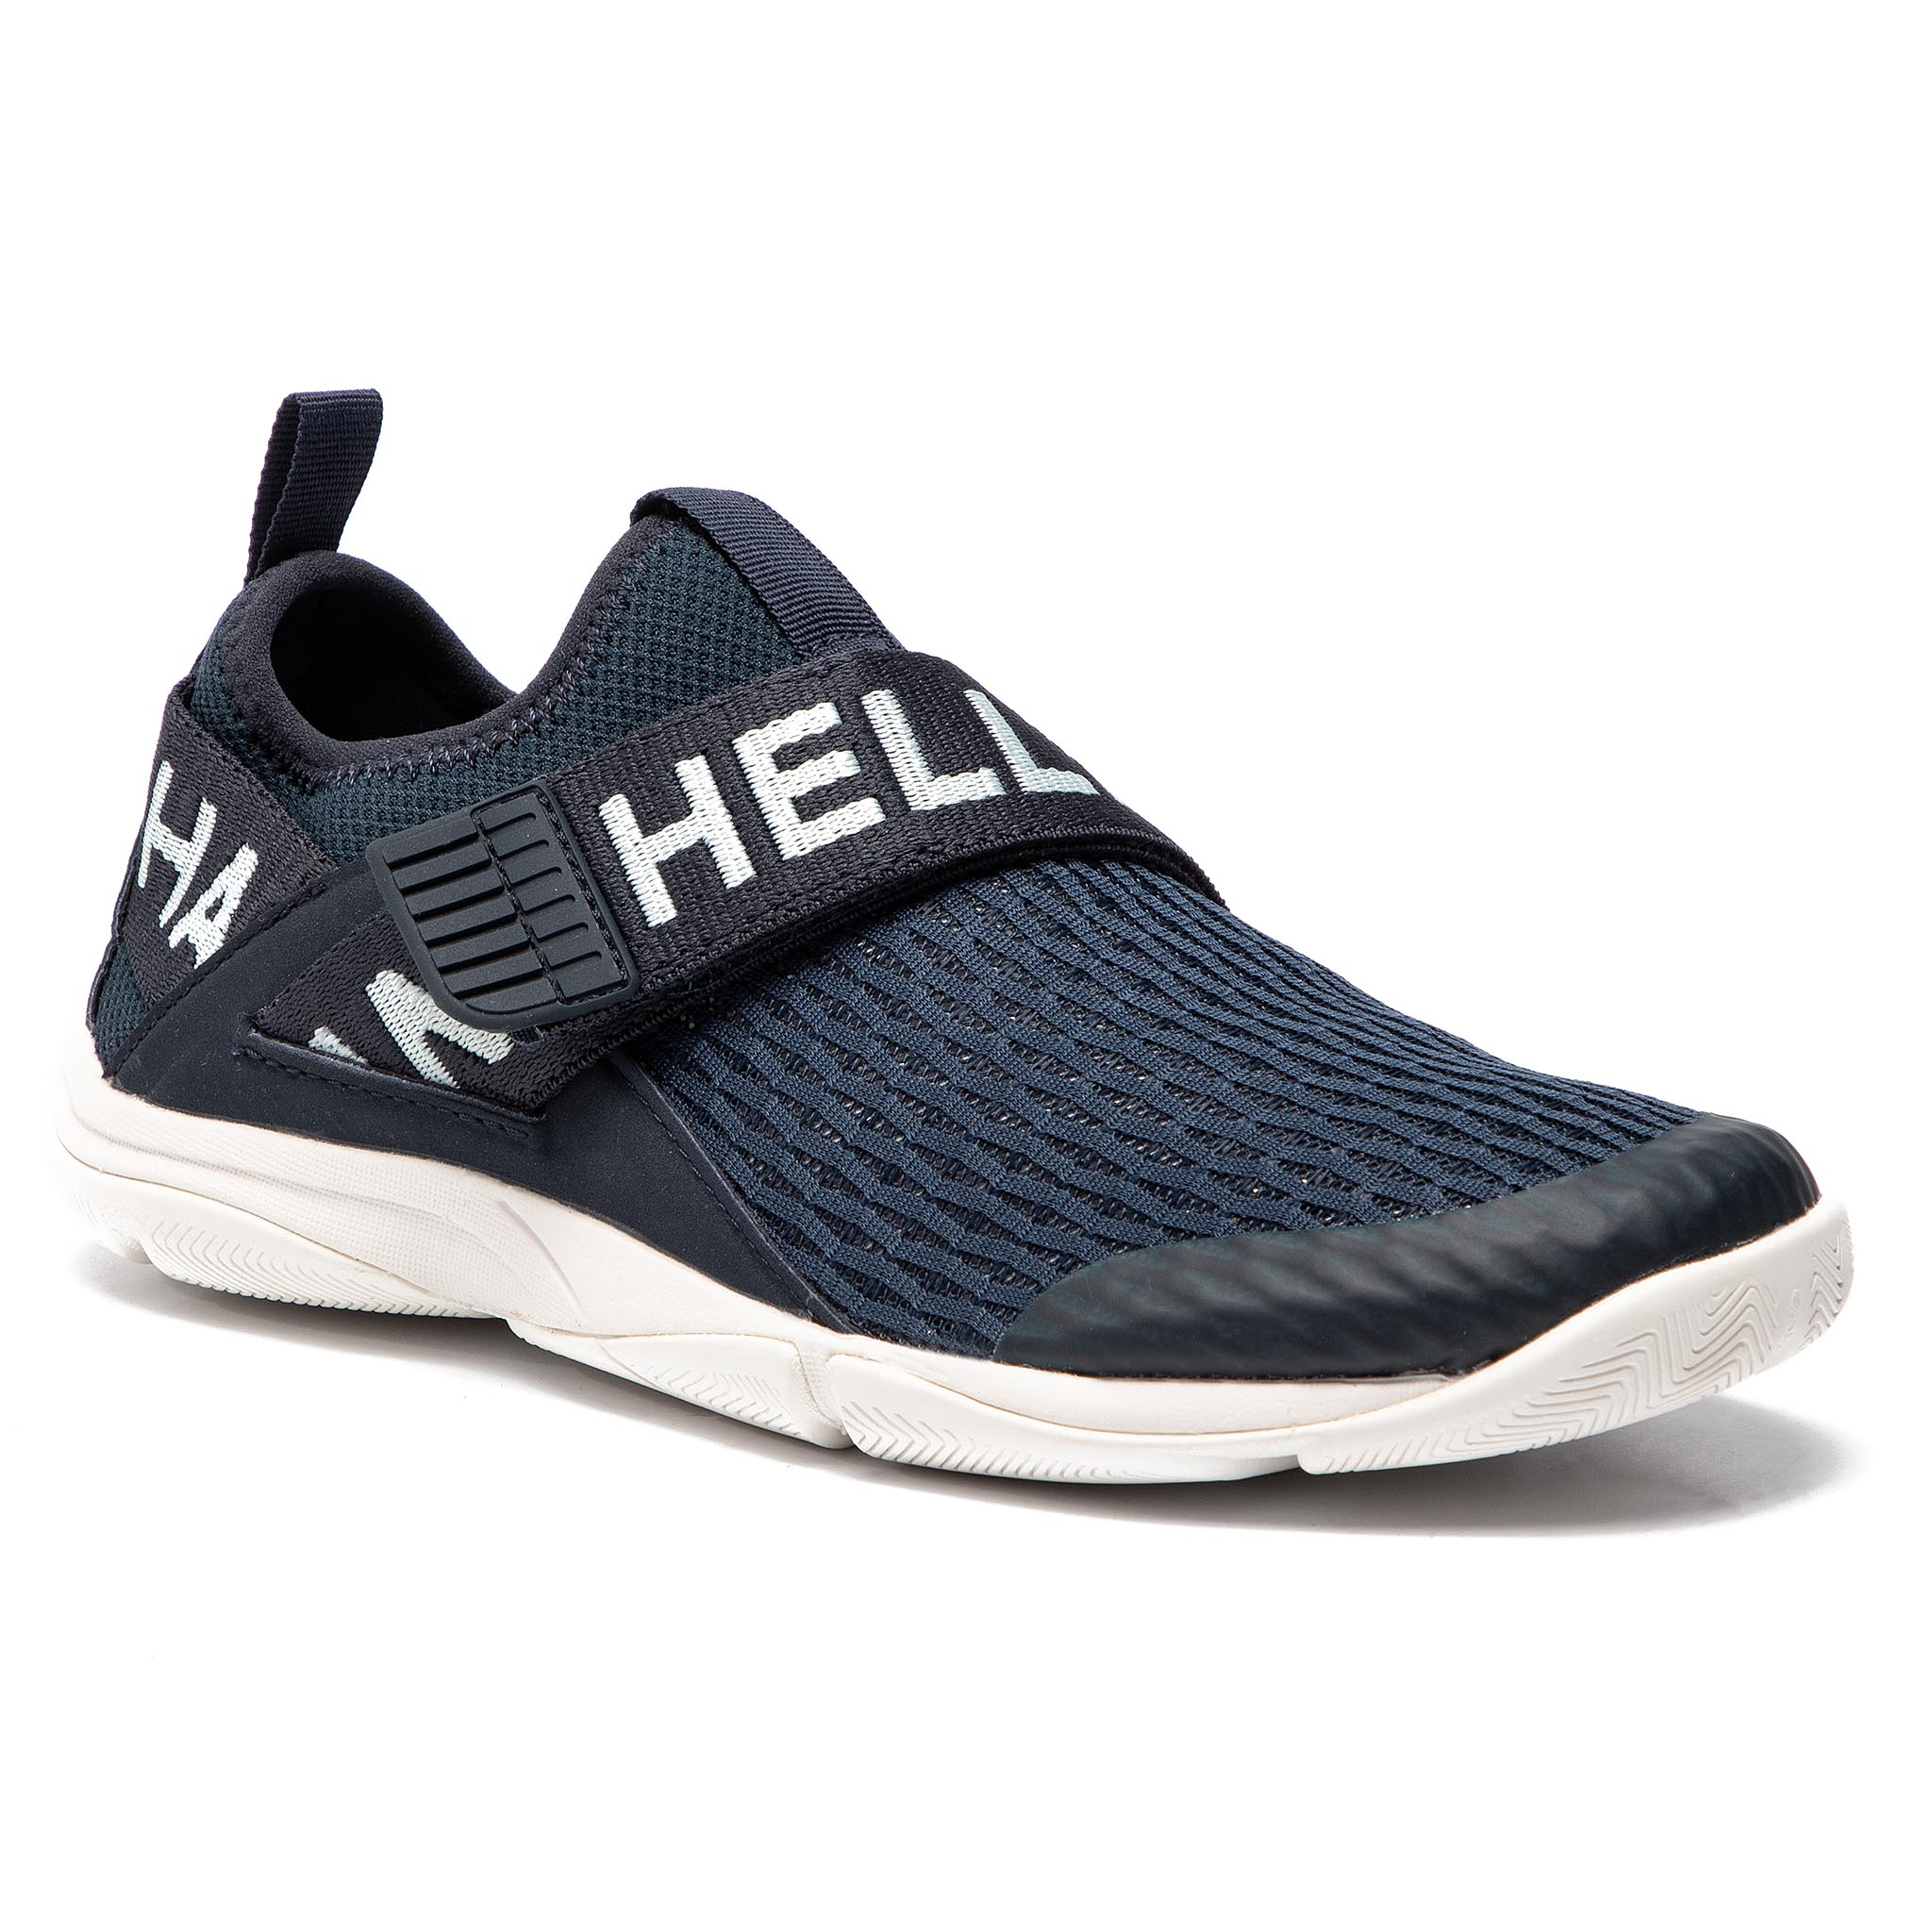 Batai HELLY HANSEN - Hydromoc Slip-On Shoe 114-68.597 Navy/Bleached Aqua/Off White